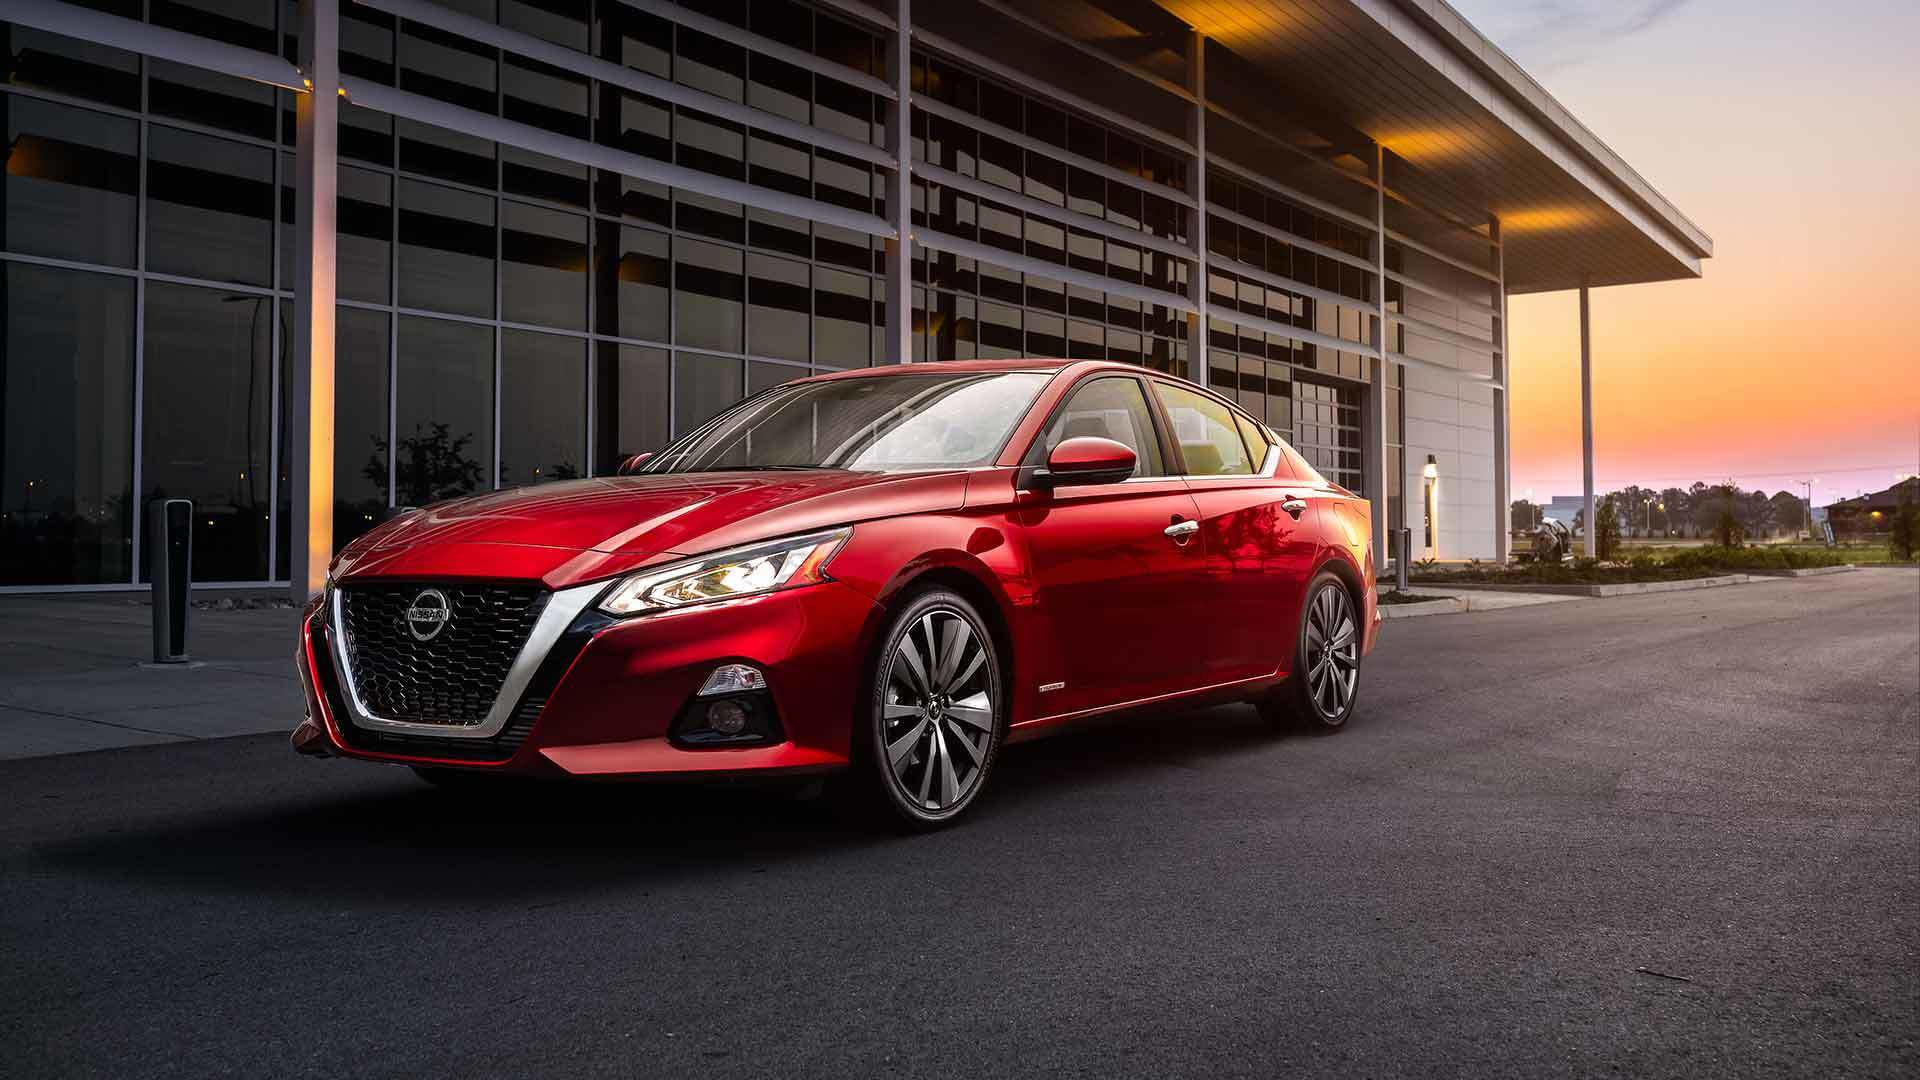 The Japanese car giant Nissan has built a special version of the Altima sedan titled the Edition One